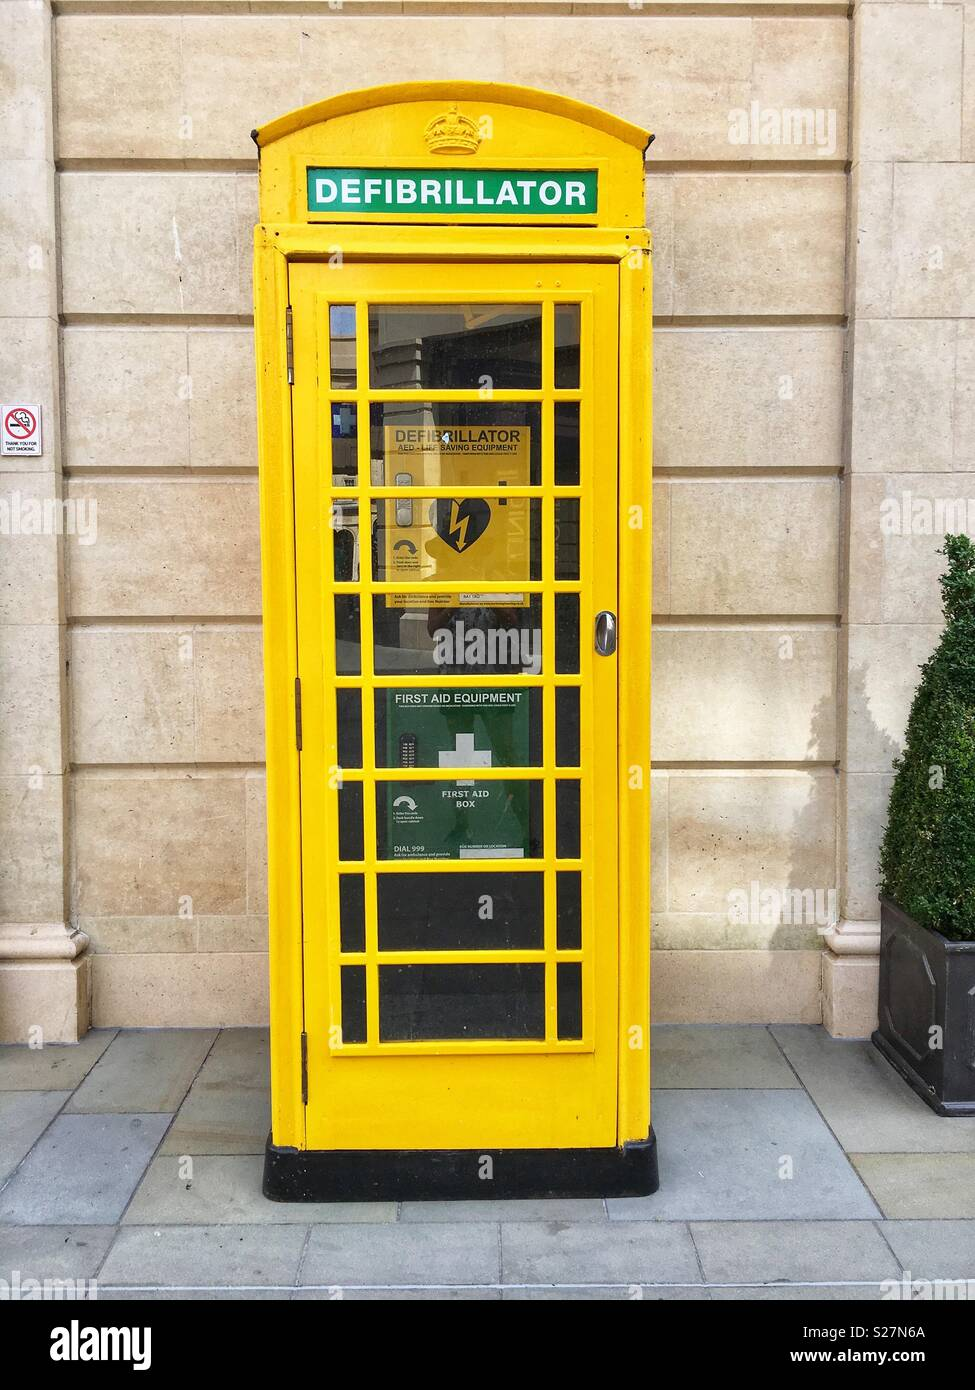 A former telephone booth has been repurposed to house a Defibrillator in Bath, England UK - Stock Image